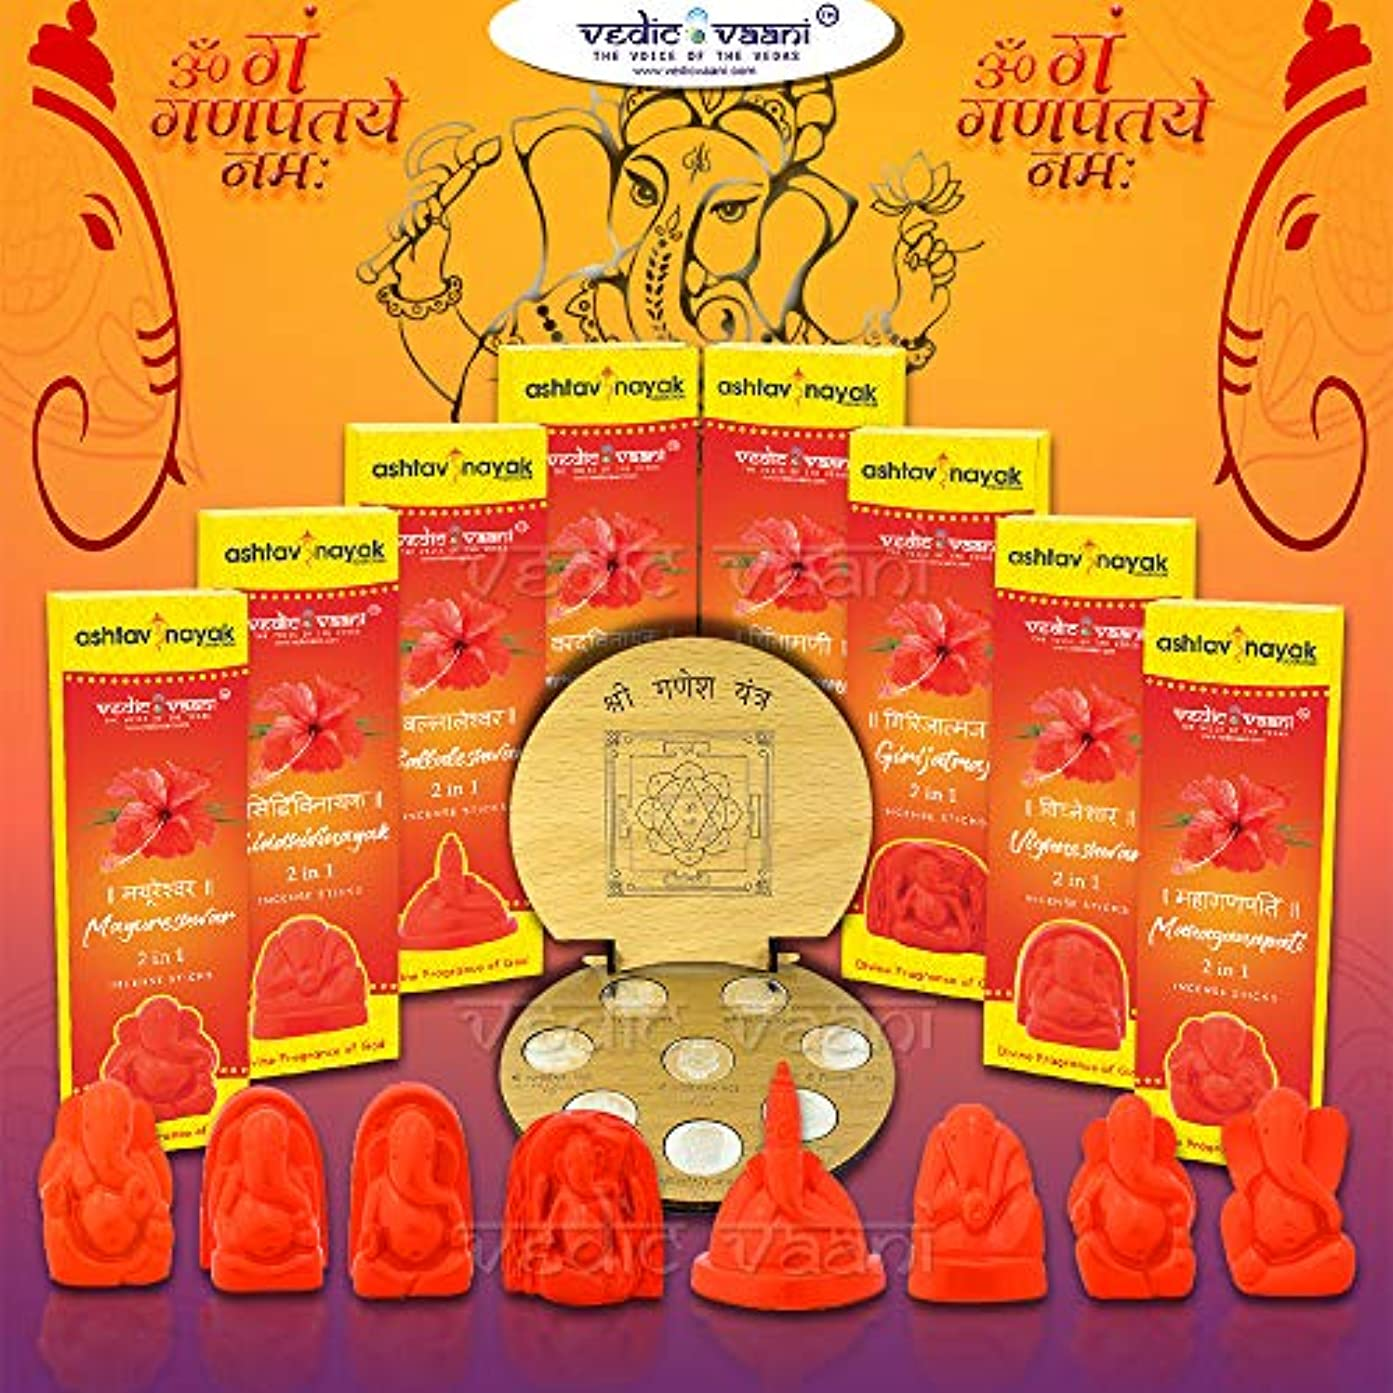 新着天窓走るVedic Vaani Shree Ashtavinayak Darshan Yantra with Ashtavinayak Darshan Set & Ganesh Festival お香セット (各100GM)